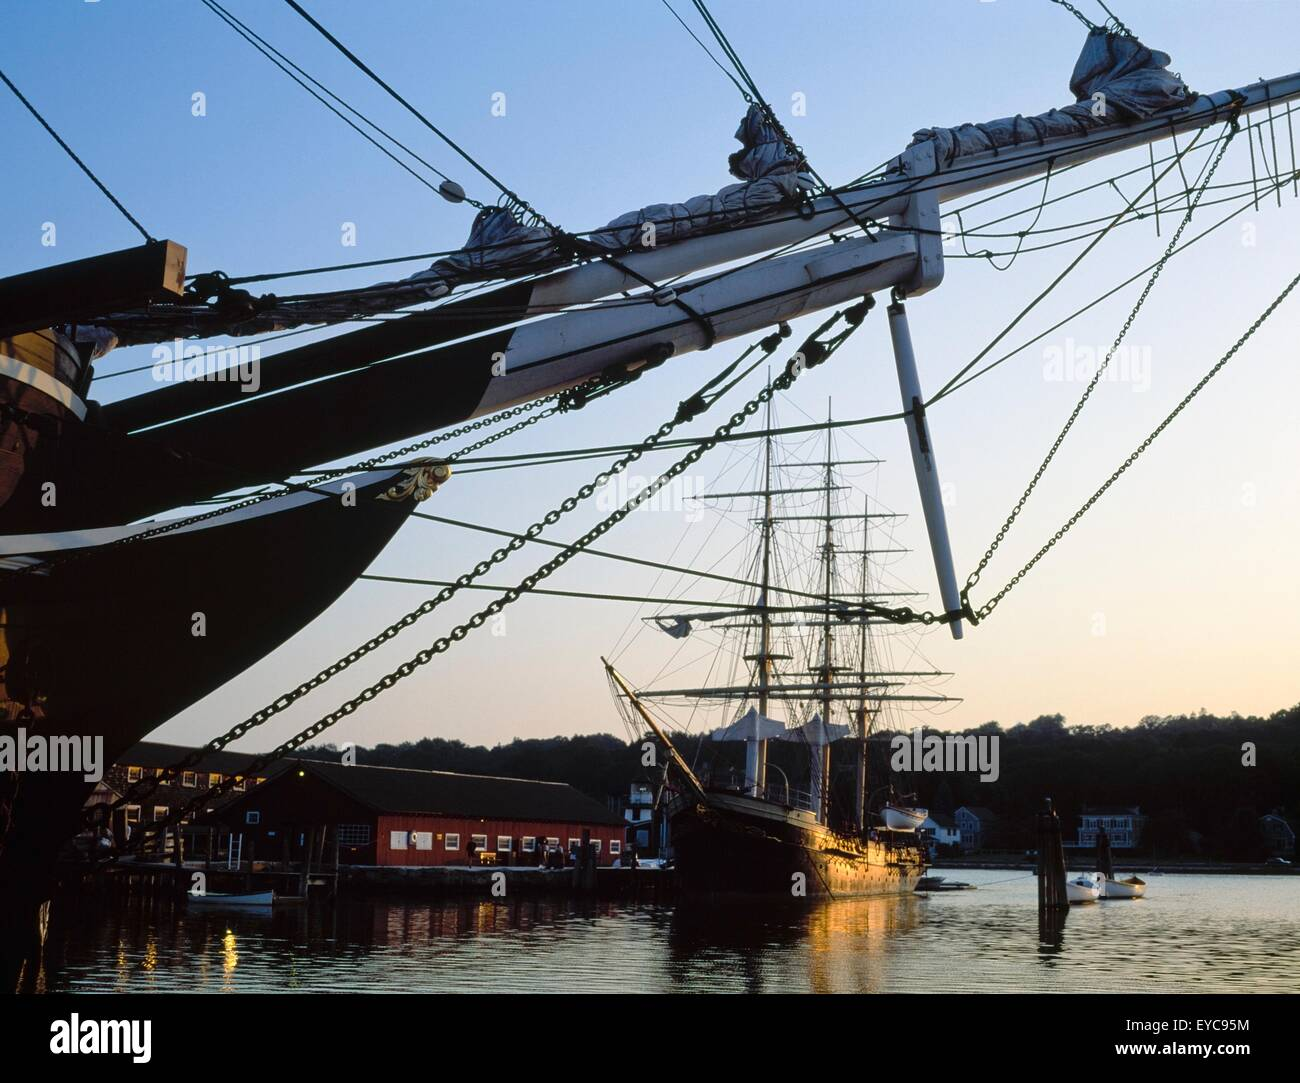 Tall Ships; Bow Of A Ship With Another Tall Ship In The Distance - Stock Image